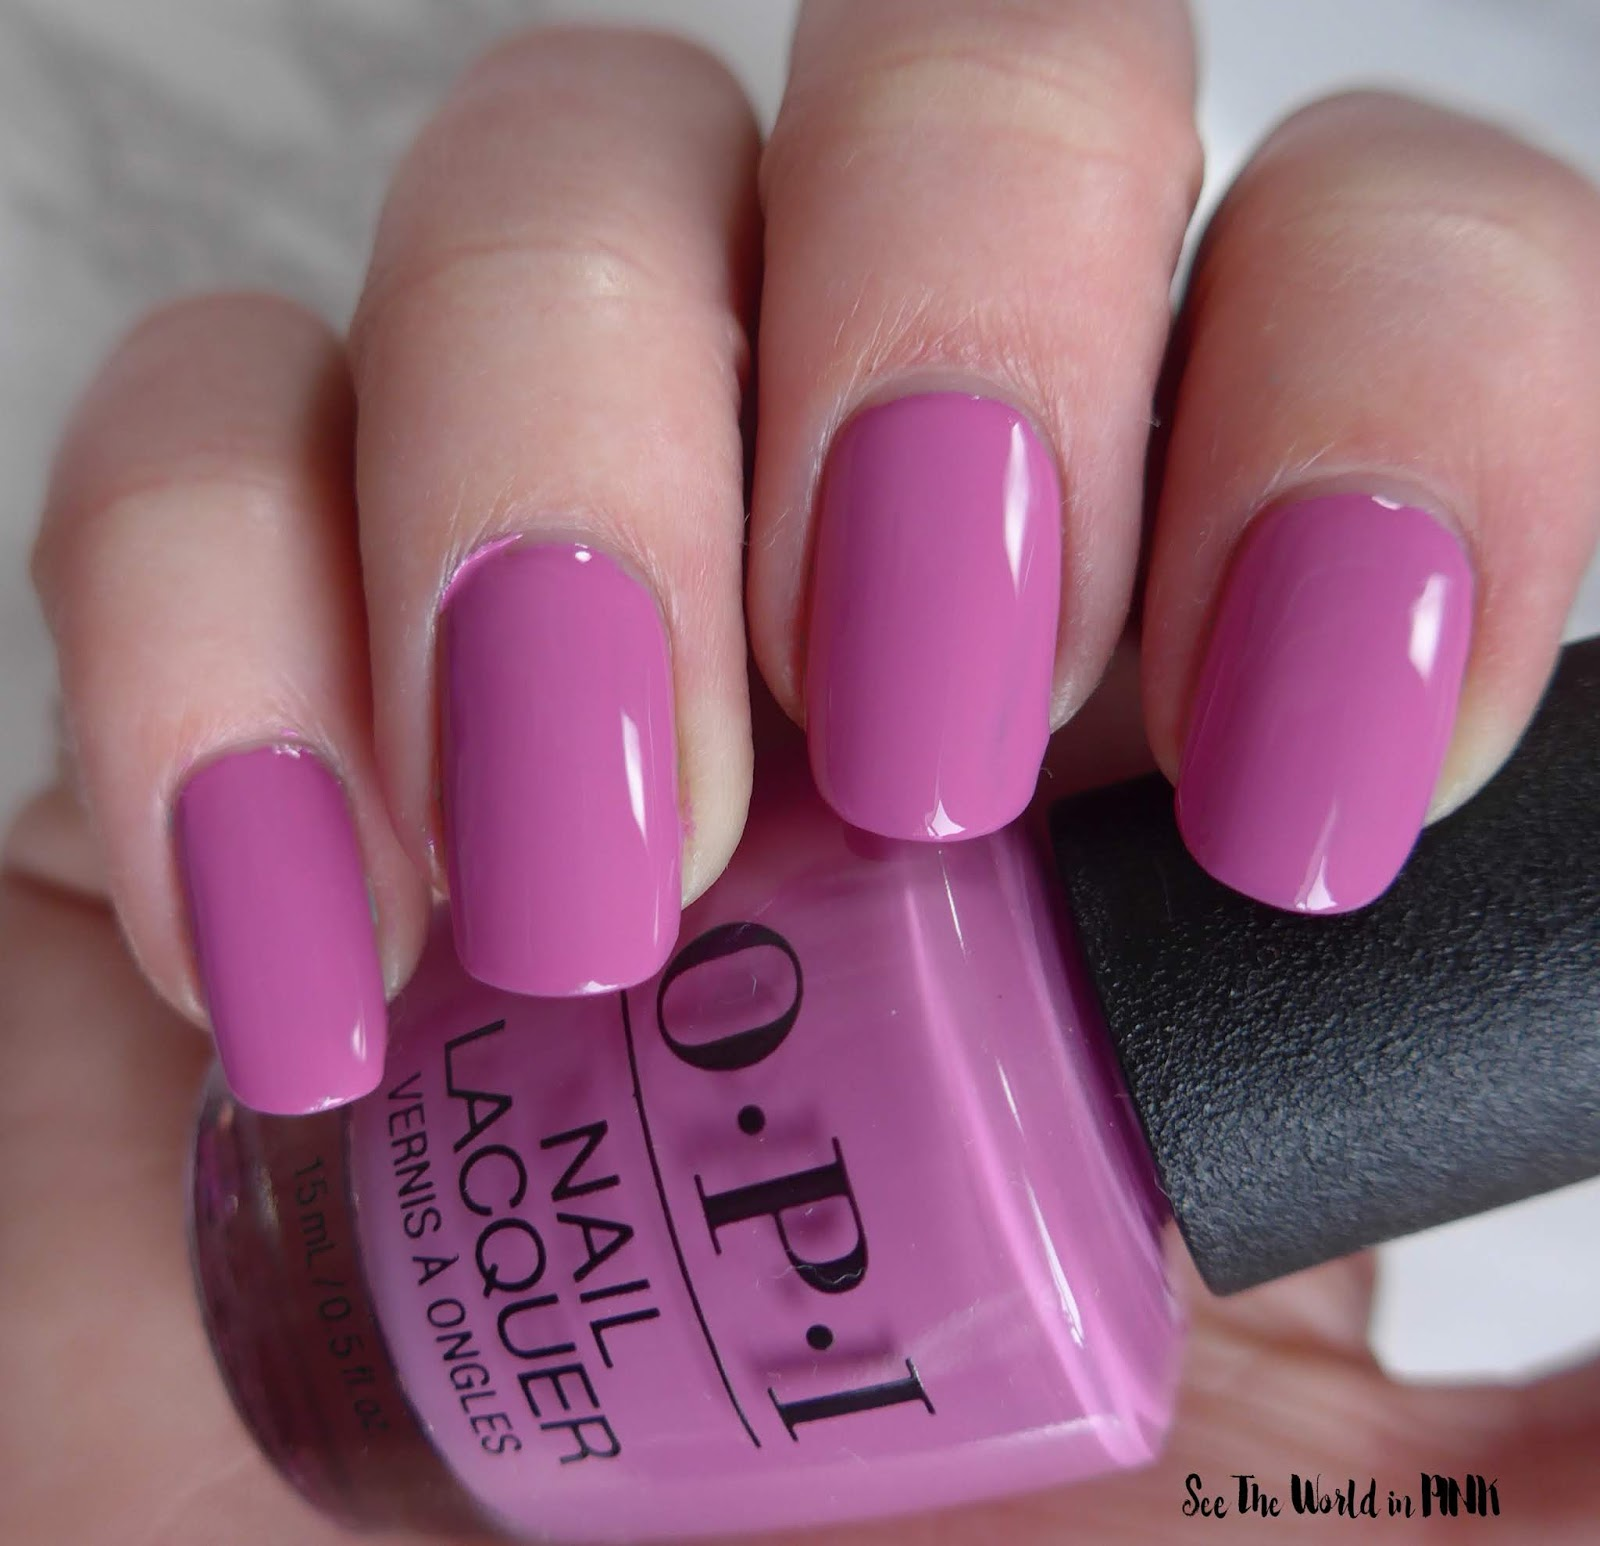 Manicure Monday - OPI Tokyo Collection for Spring and Summer 2019 Arigato From Tokyo